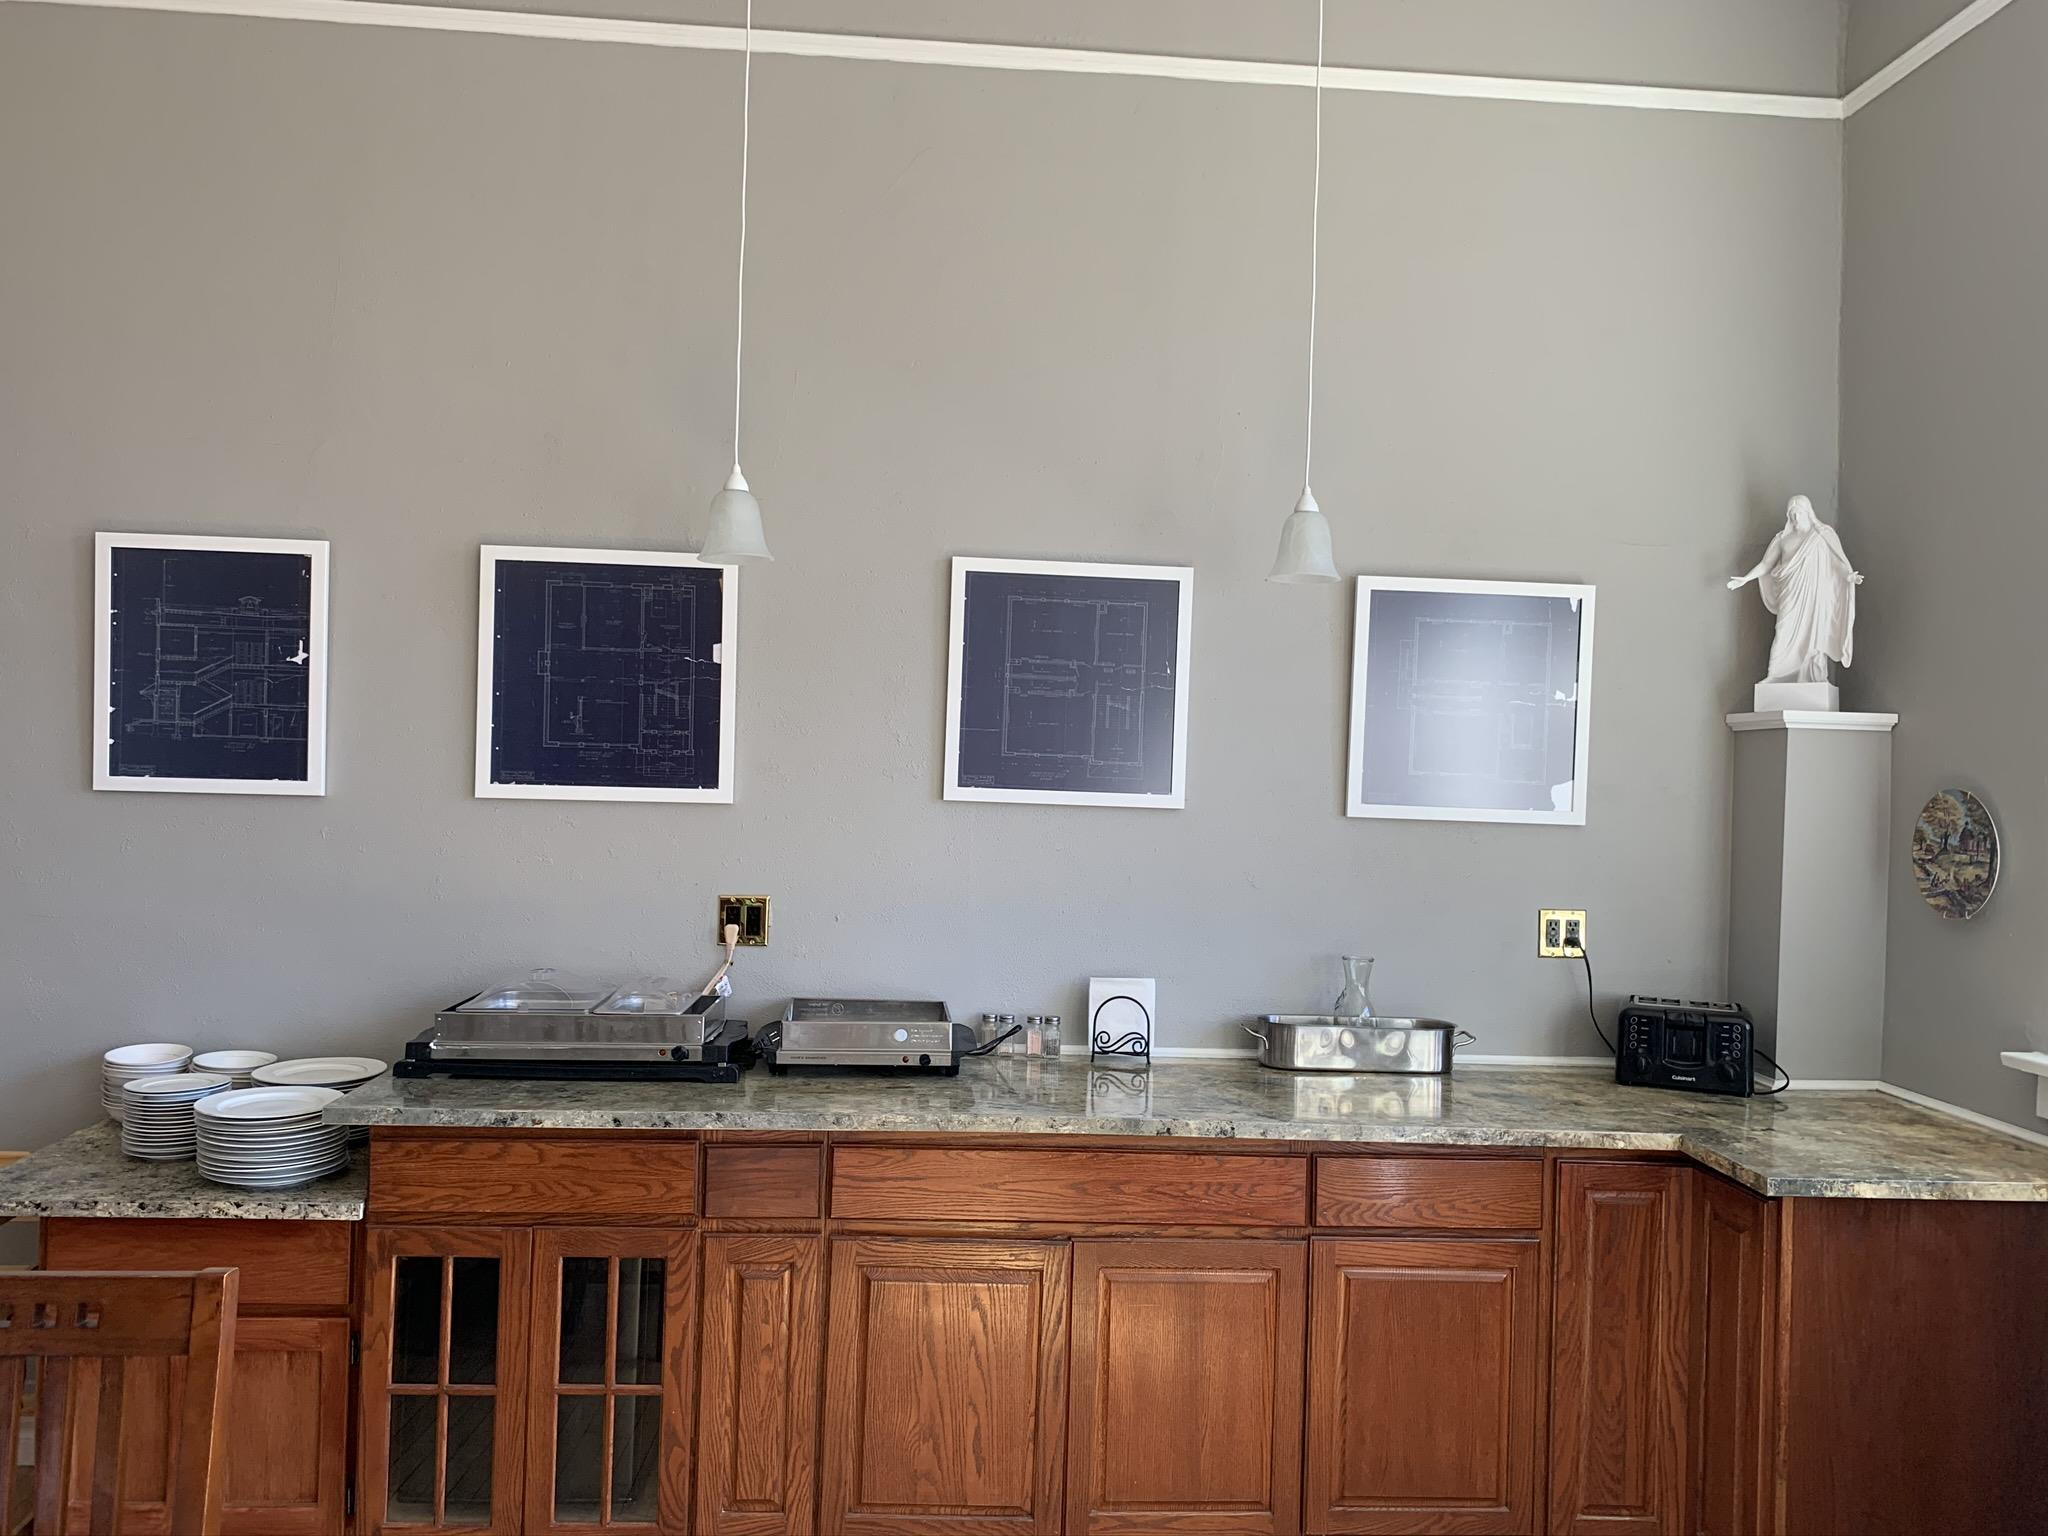 Dining Room wall with blueprints hanging